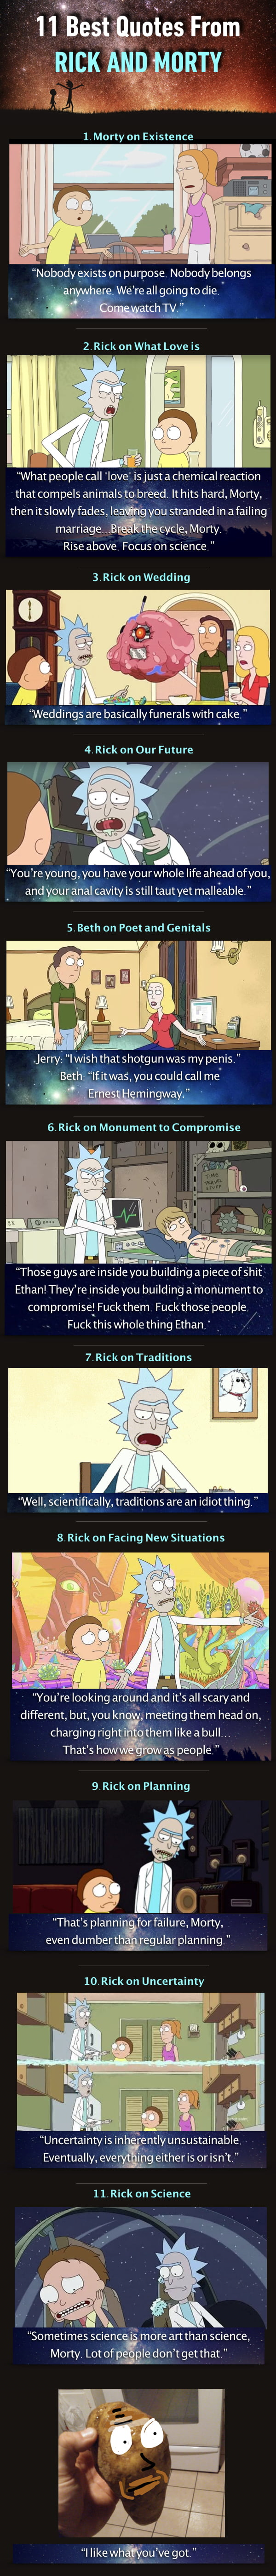 Best Rick And Morty Quotes 11 Best Rick And Morty Quotes Of All Time  9Gag